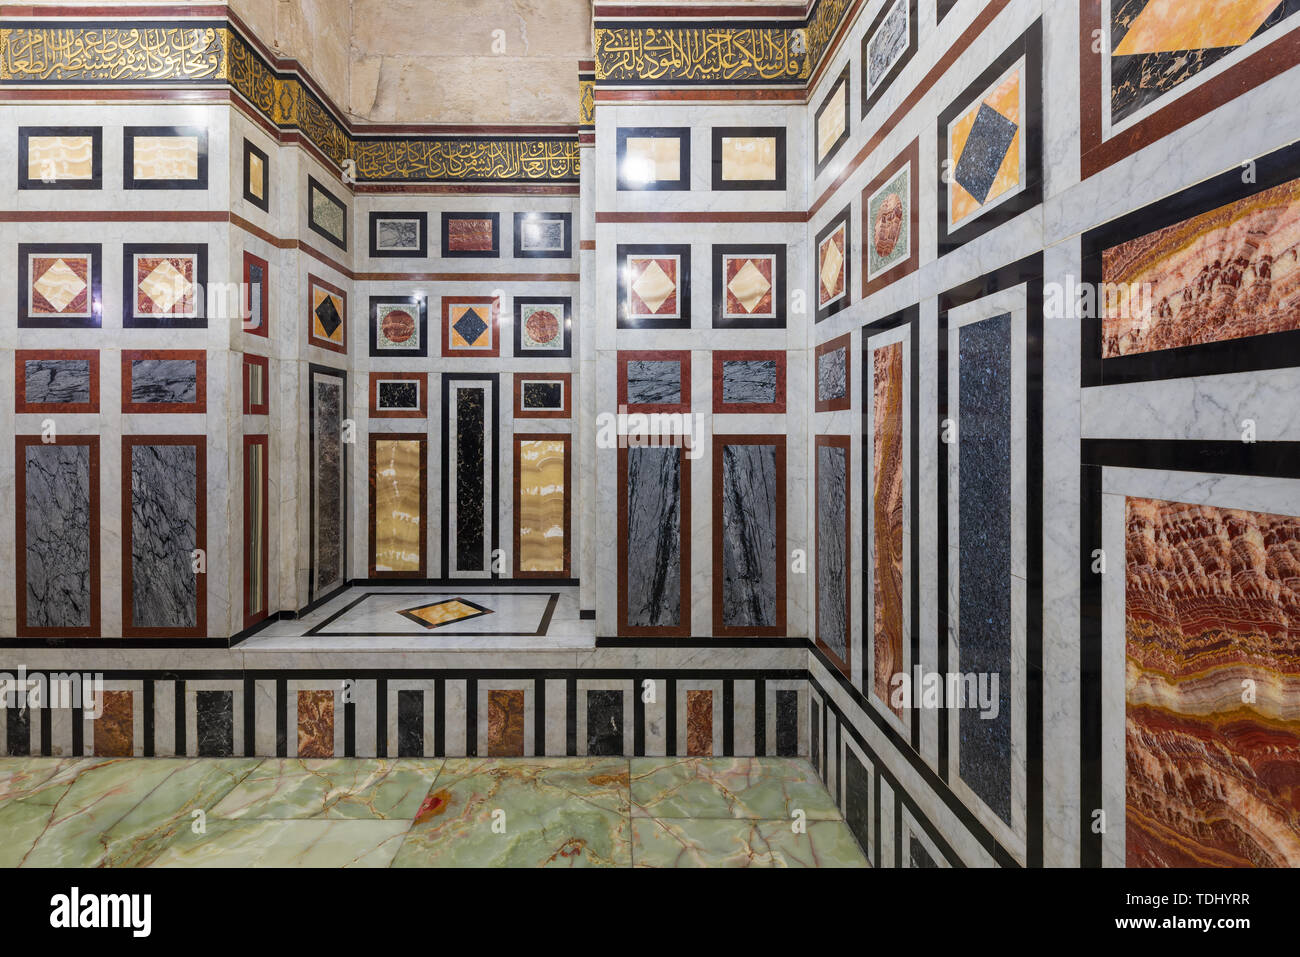 Decorated marble wall and marble tiled floor at al Refai Mosque, Cairo, Egypt - Stock Image